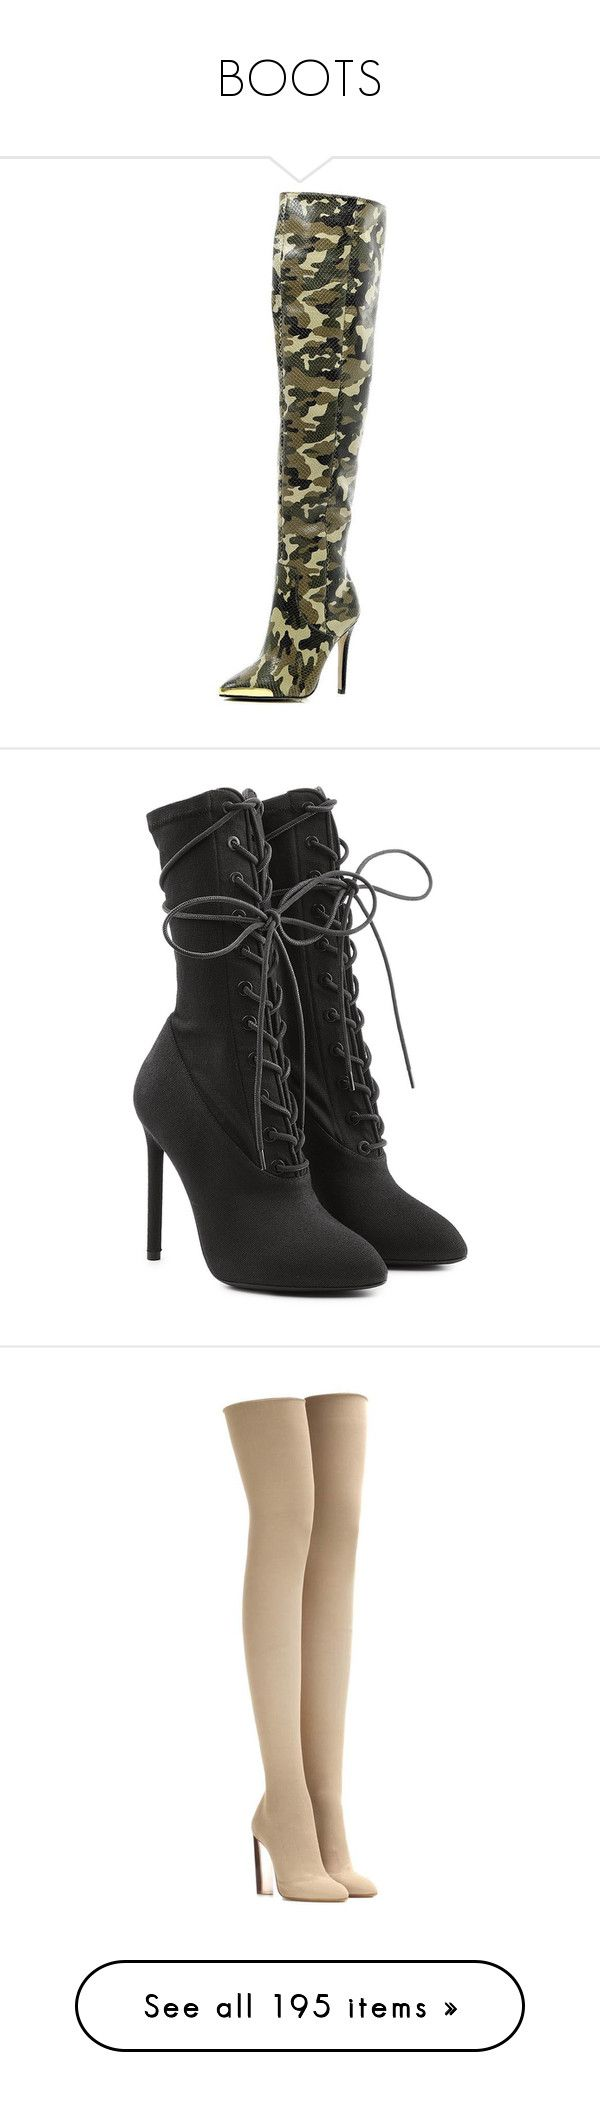 """""""BOOTS"""" by theonlydej ❤ liked on Polyvore featuring shoes, boots, sale, knee high boots, knee high stiletto boots, high heel stilettos, river island, heels stilettos, ankle booties and heels"""